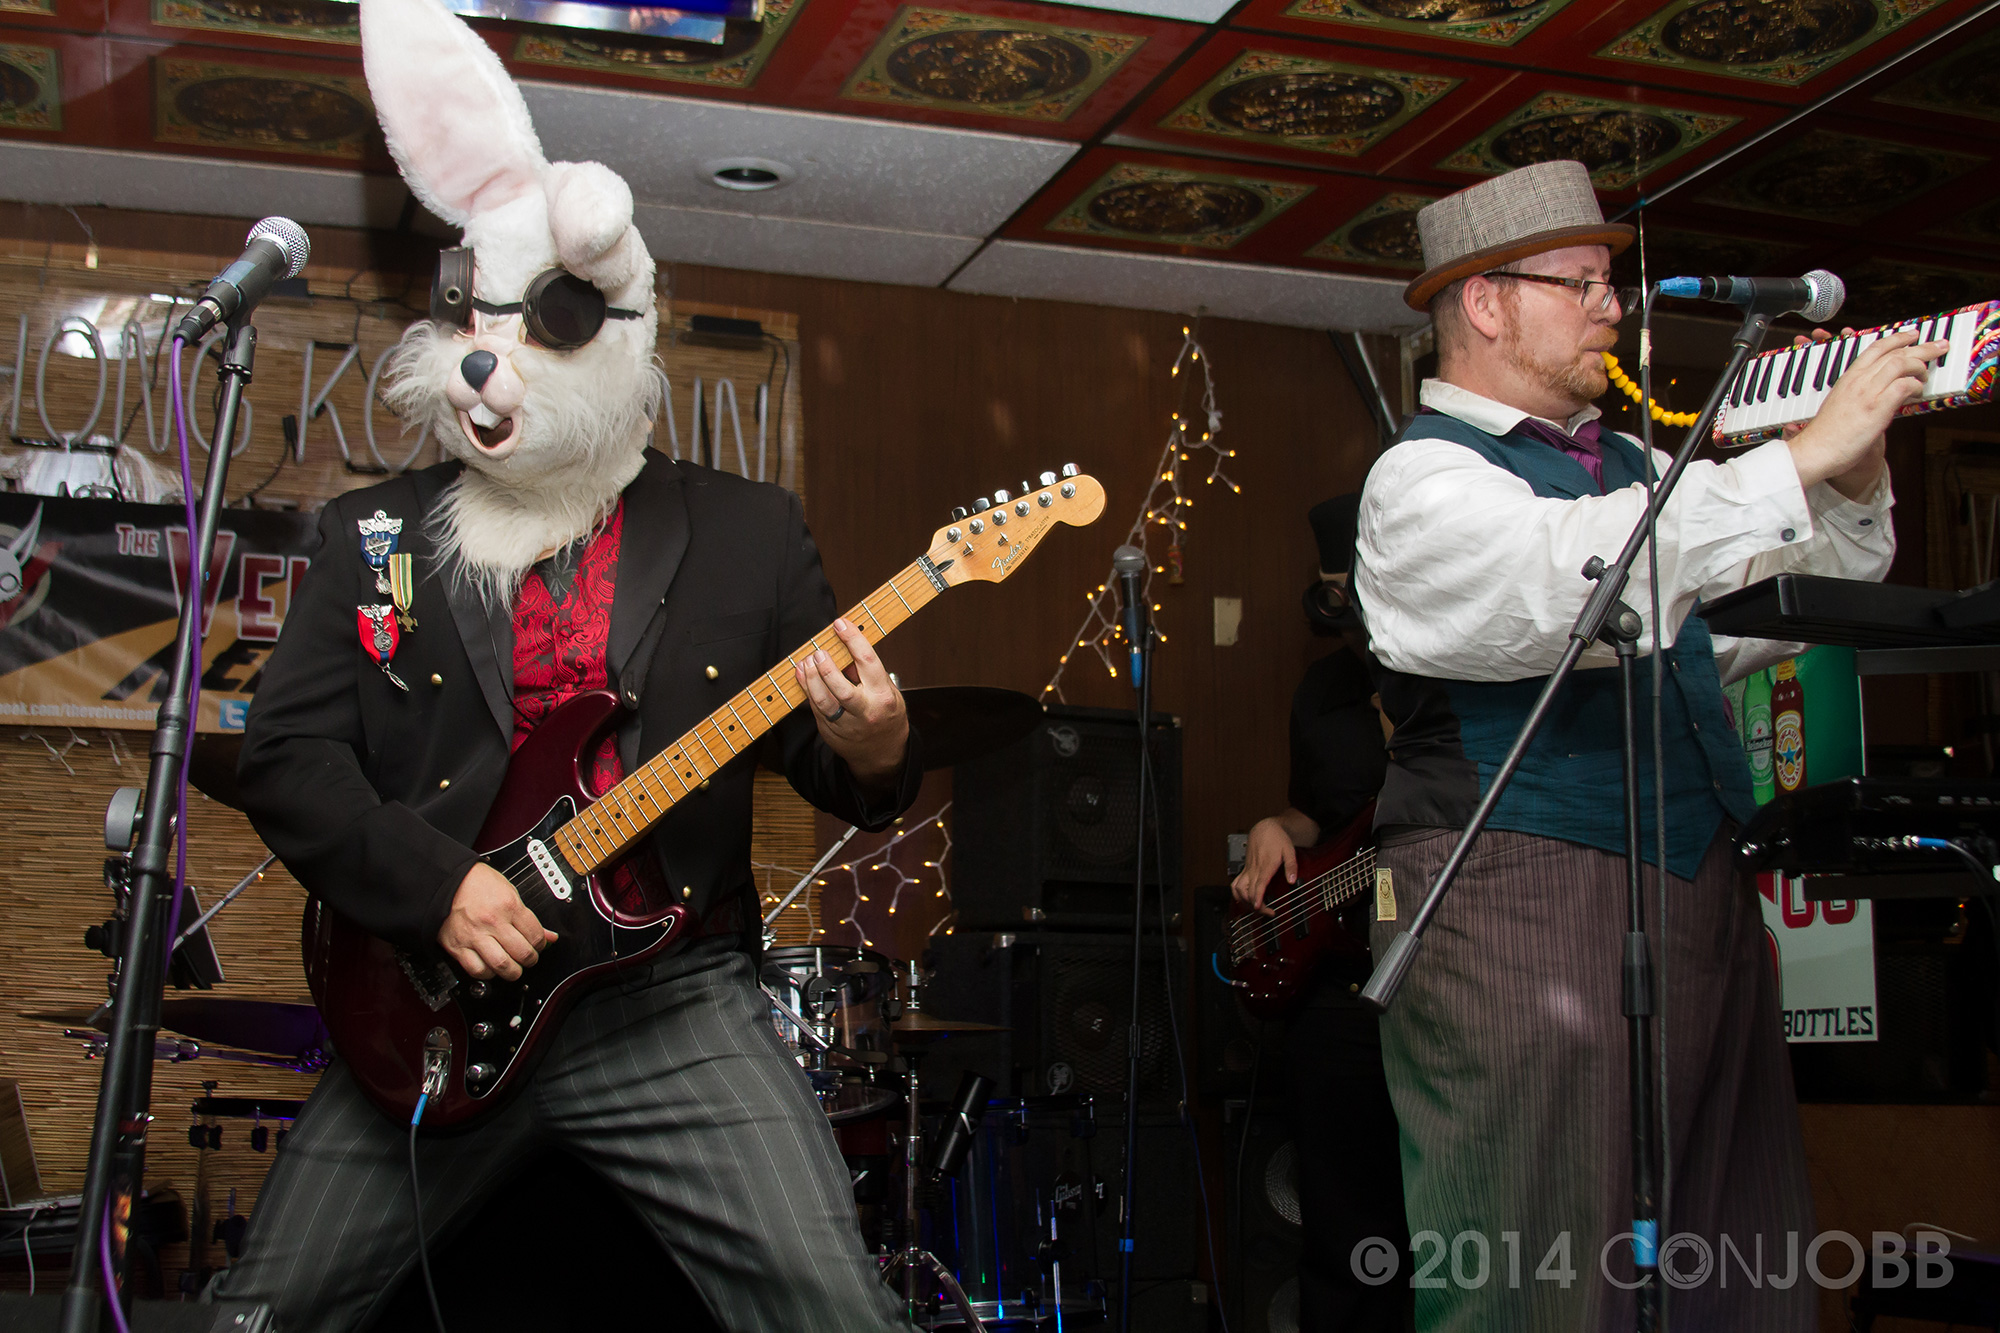 the Baron, Buster Matthews, Professor Z - 2 - photo by Jon Cobb - Novebmer 7 2014